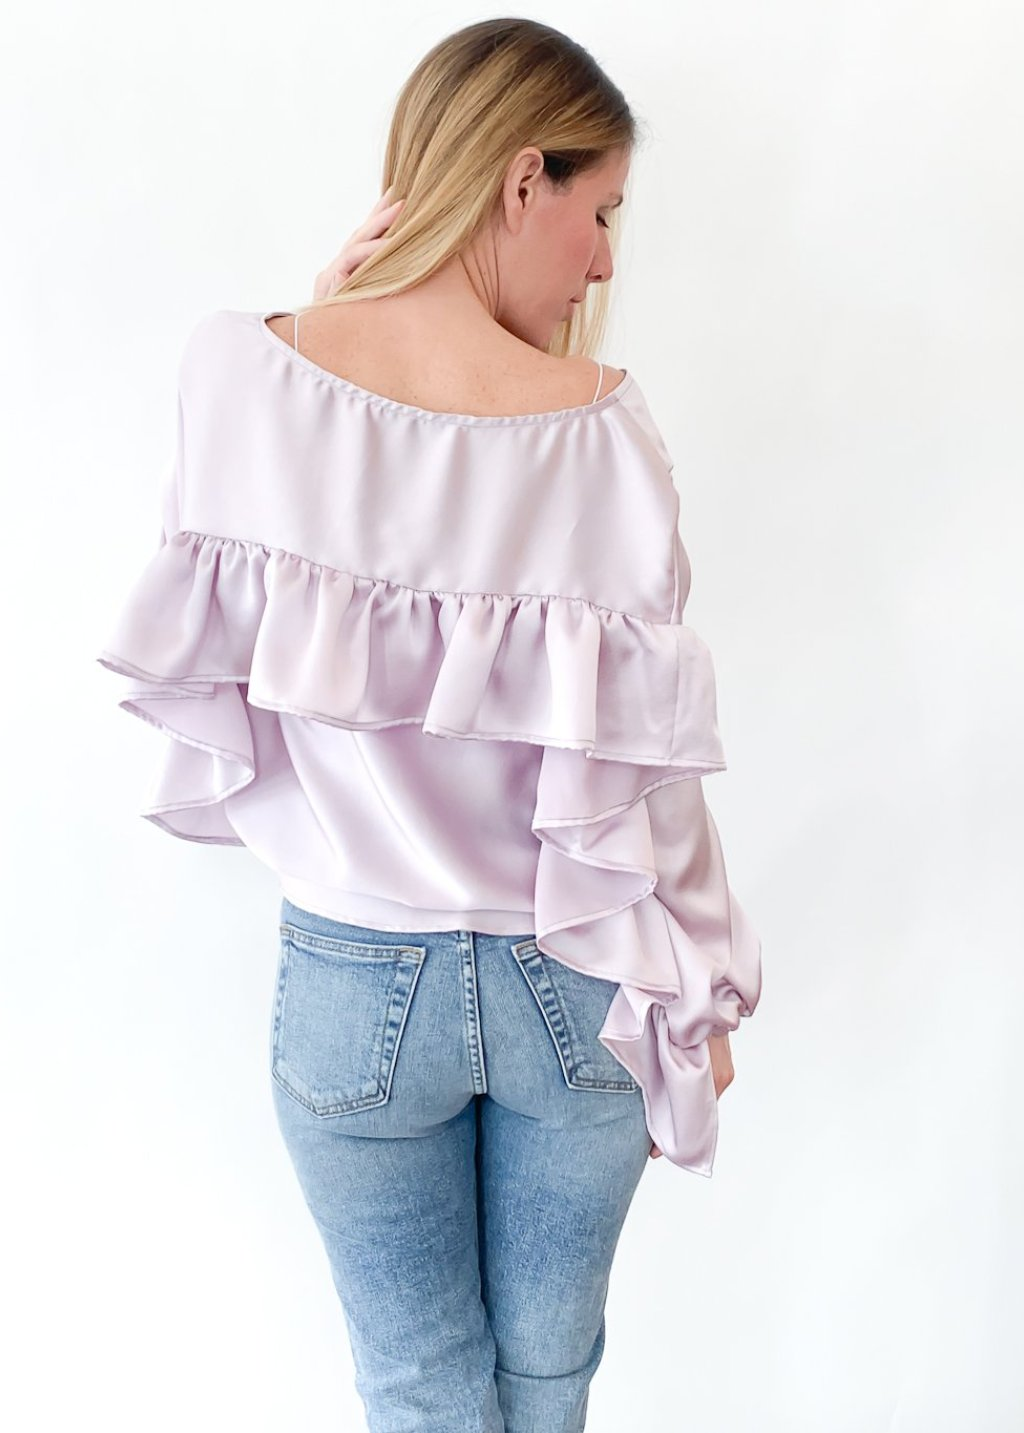 <h1>ELIZABETH Ruffle Back Top in Lavender</h1>